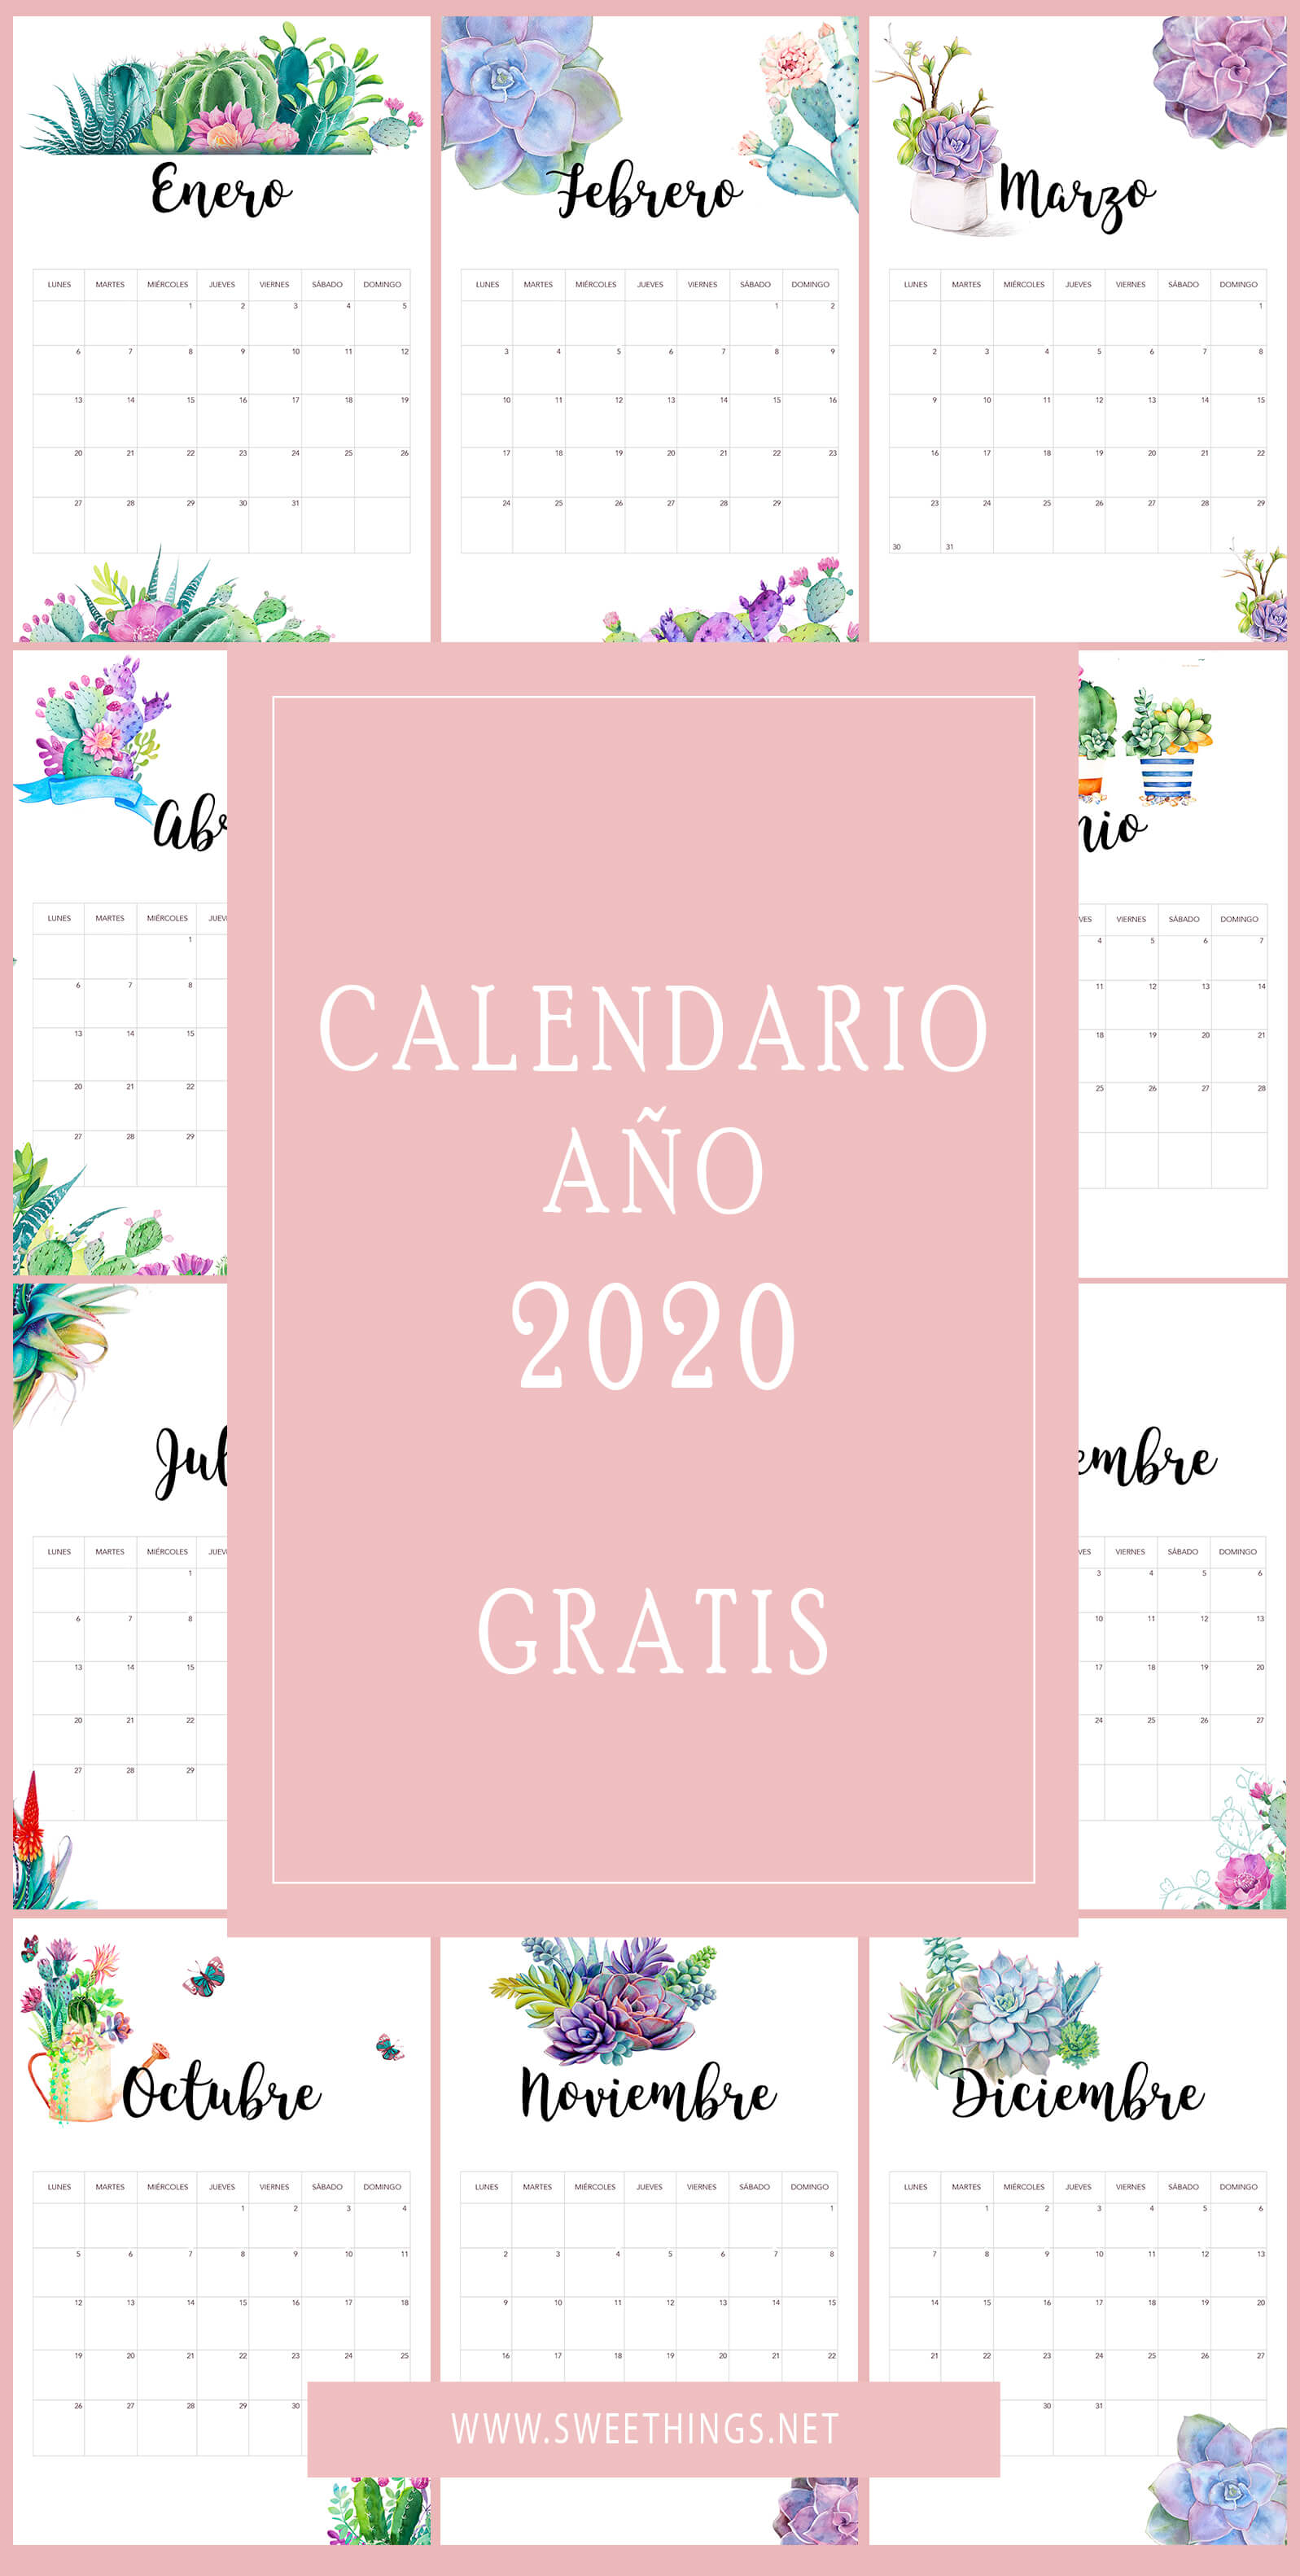 Calendario 2020 suculentas gratis para descargar · Via www.sweethings.net